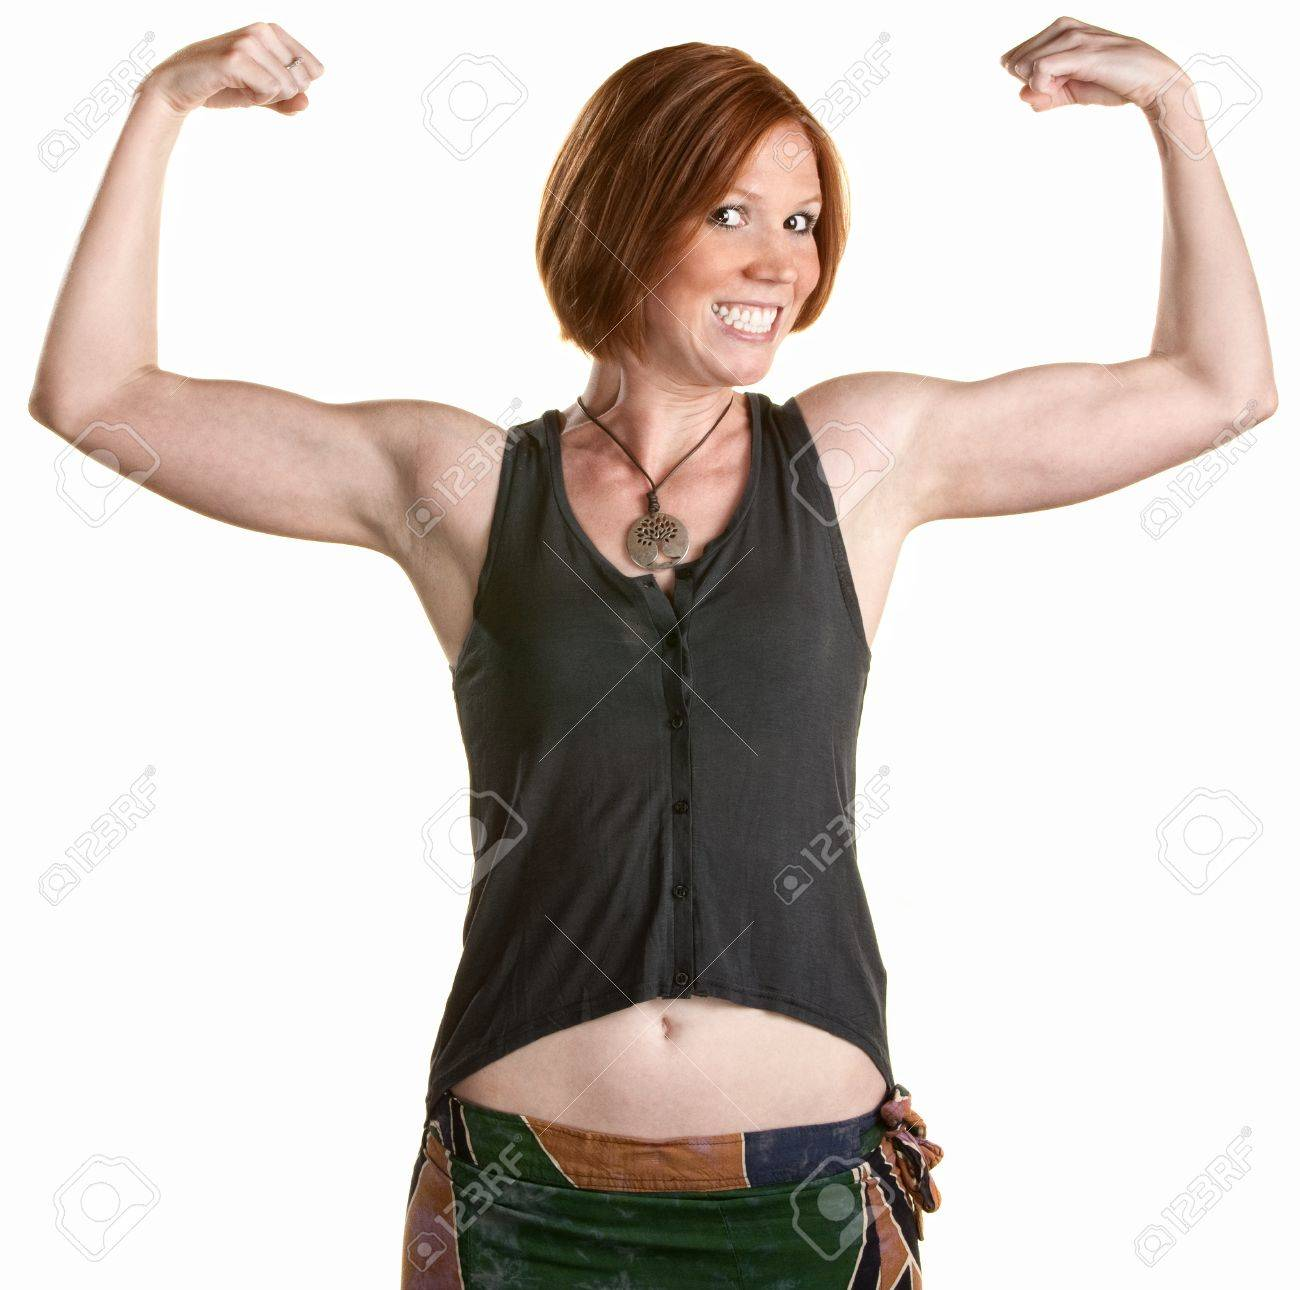 Happy Woman With Smile And Flexing Bicep Muscles Stock Photo